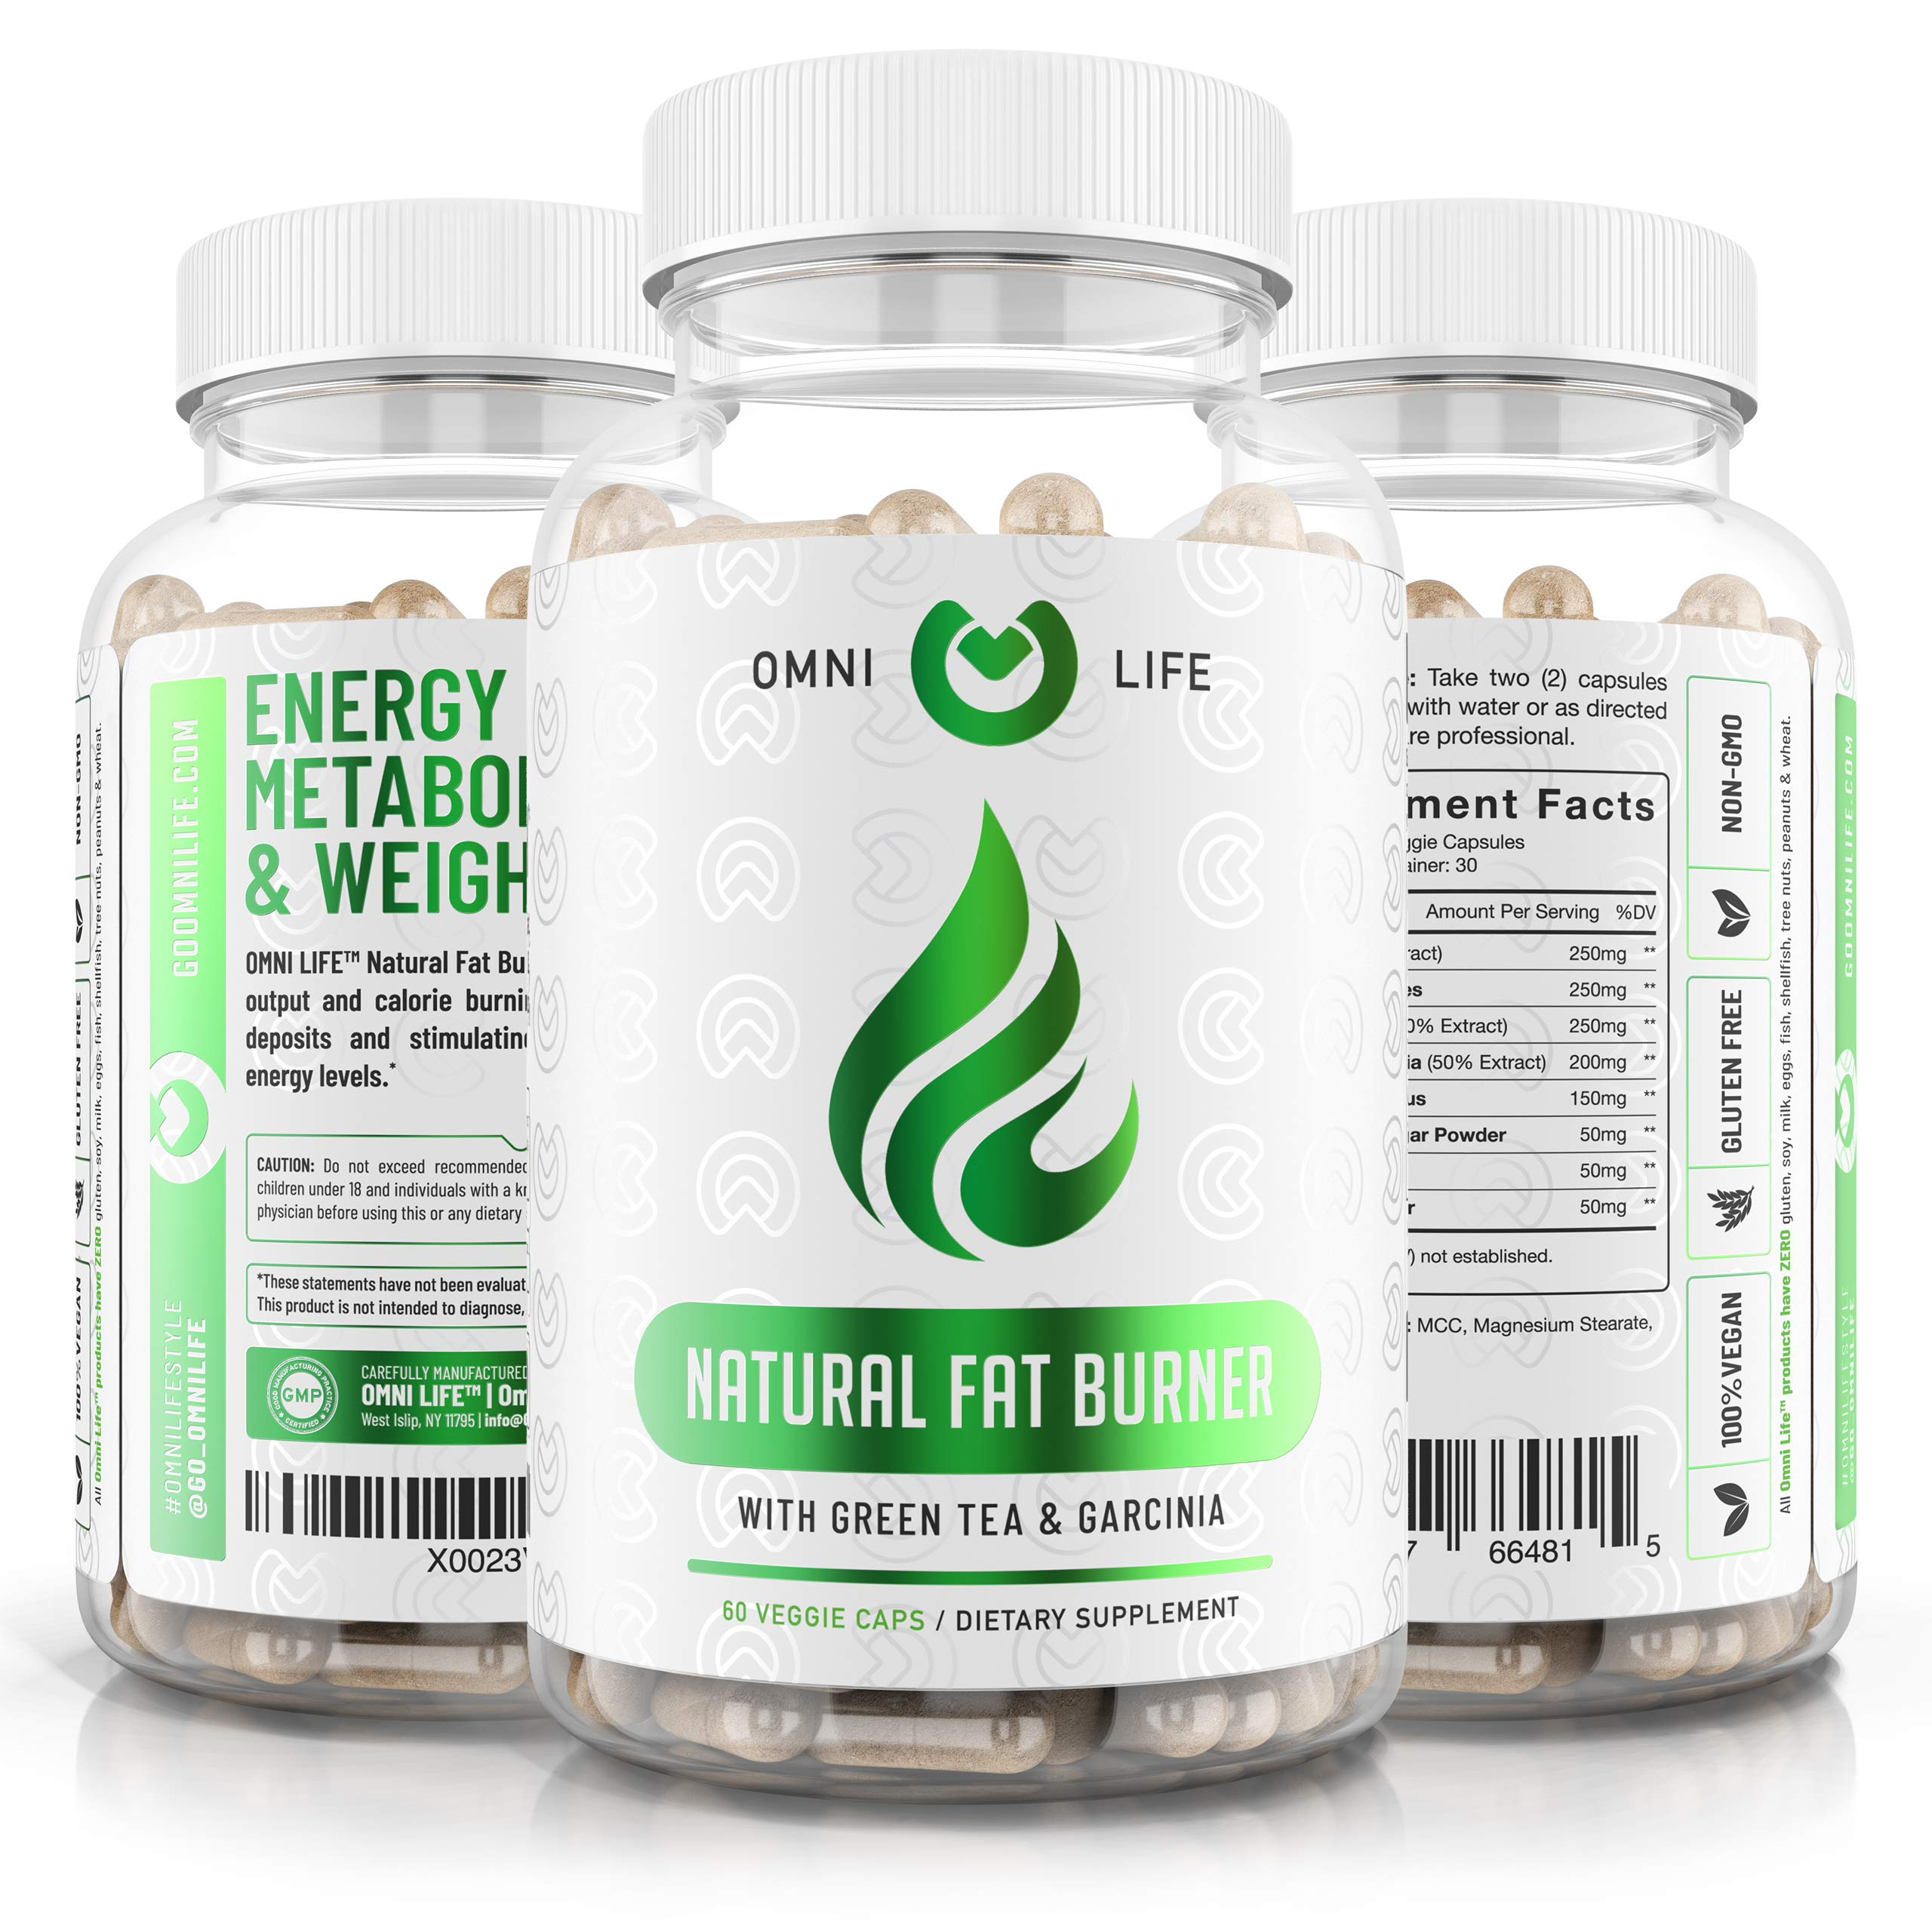 Fat Burner Diet Pills - Premium Natural Weight Loss & Energy Booster Supplement with Raspberry Ketones, Caffeine, Garcinia Cambogia - Advanced Thermogenic Fat Burner Pills for Ketosis - 60 Capsules